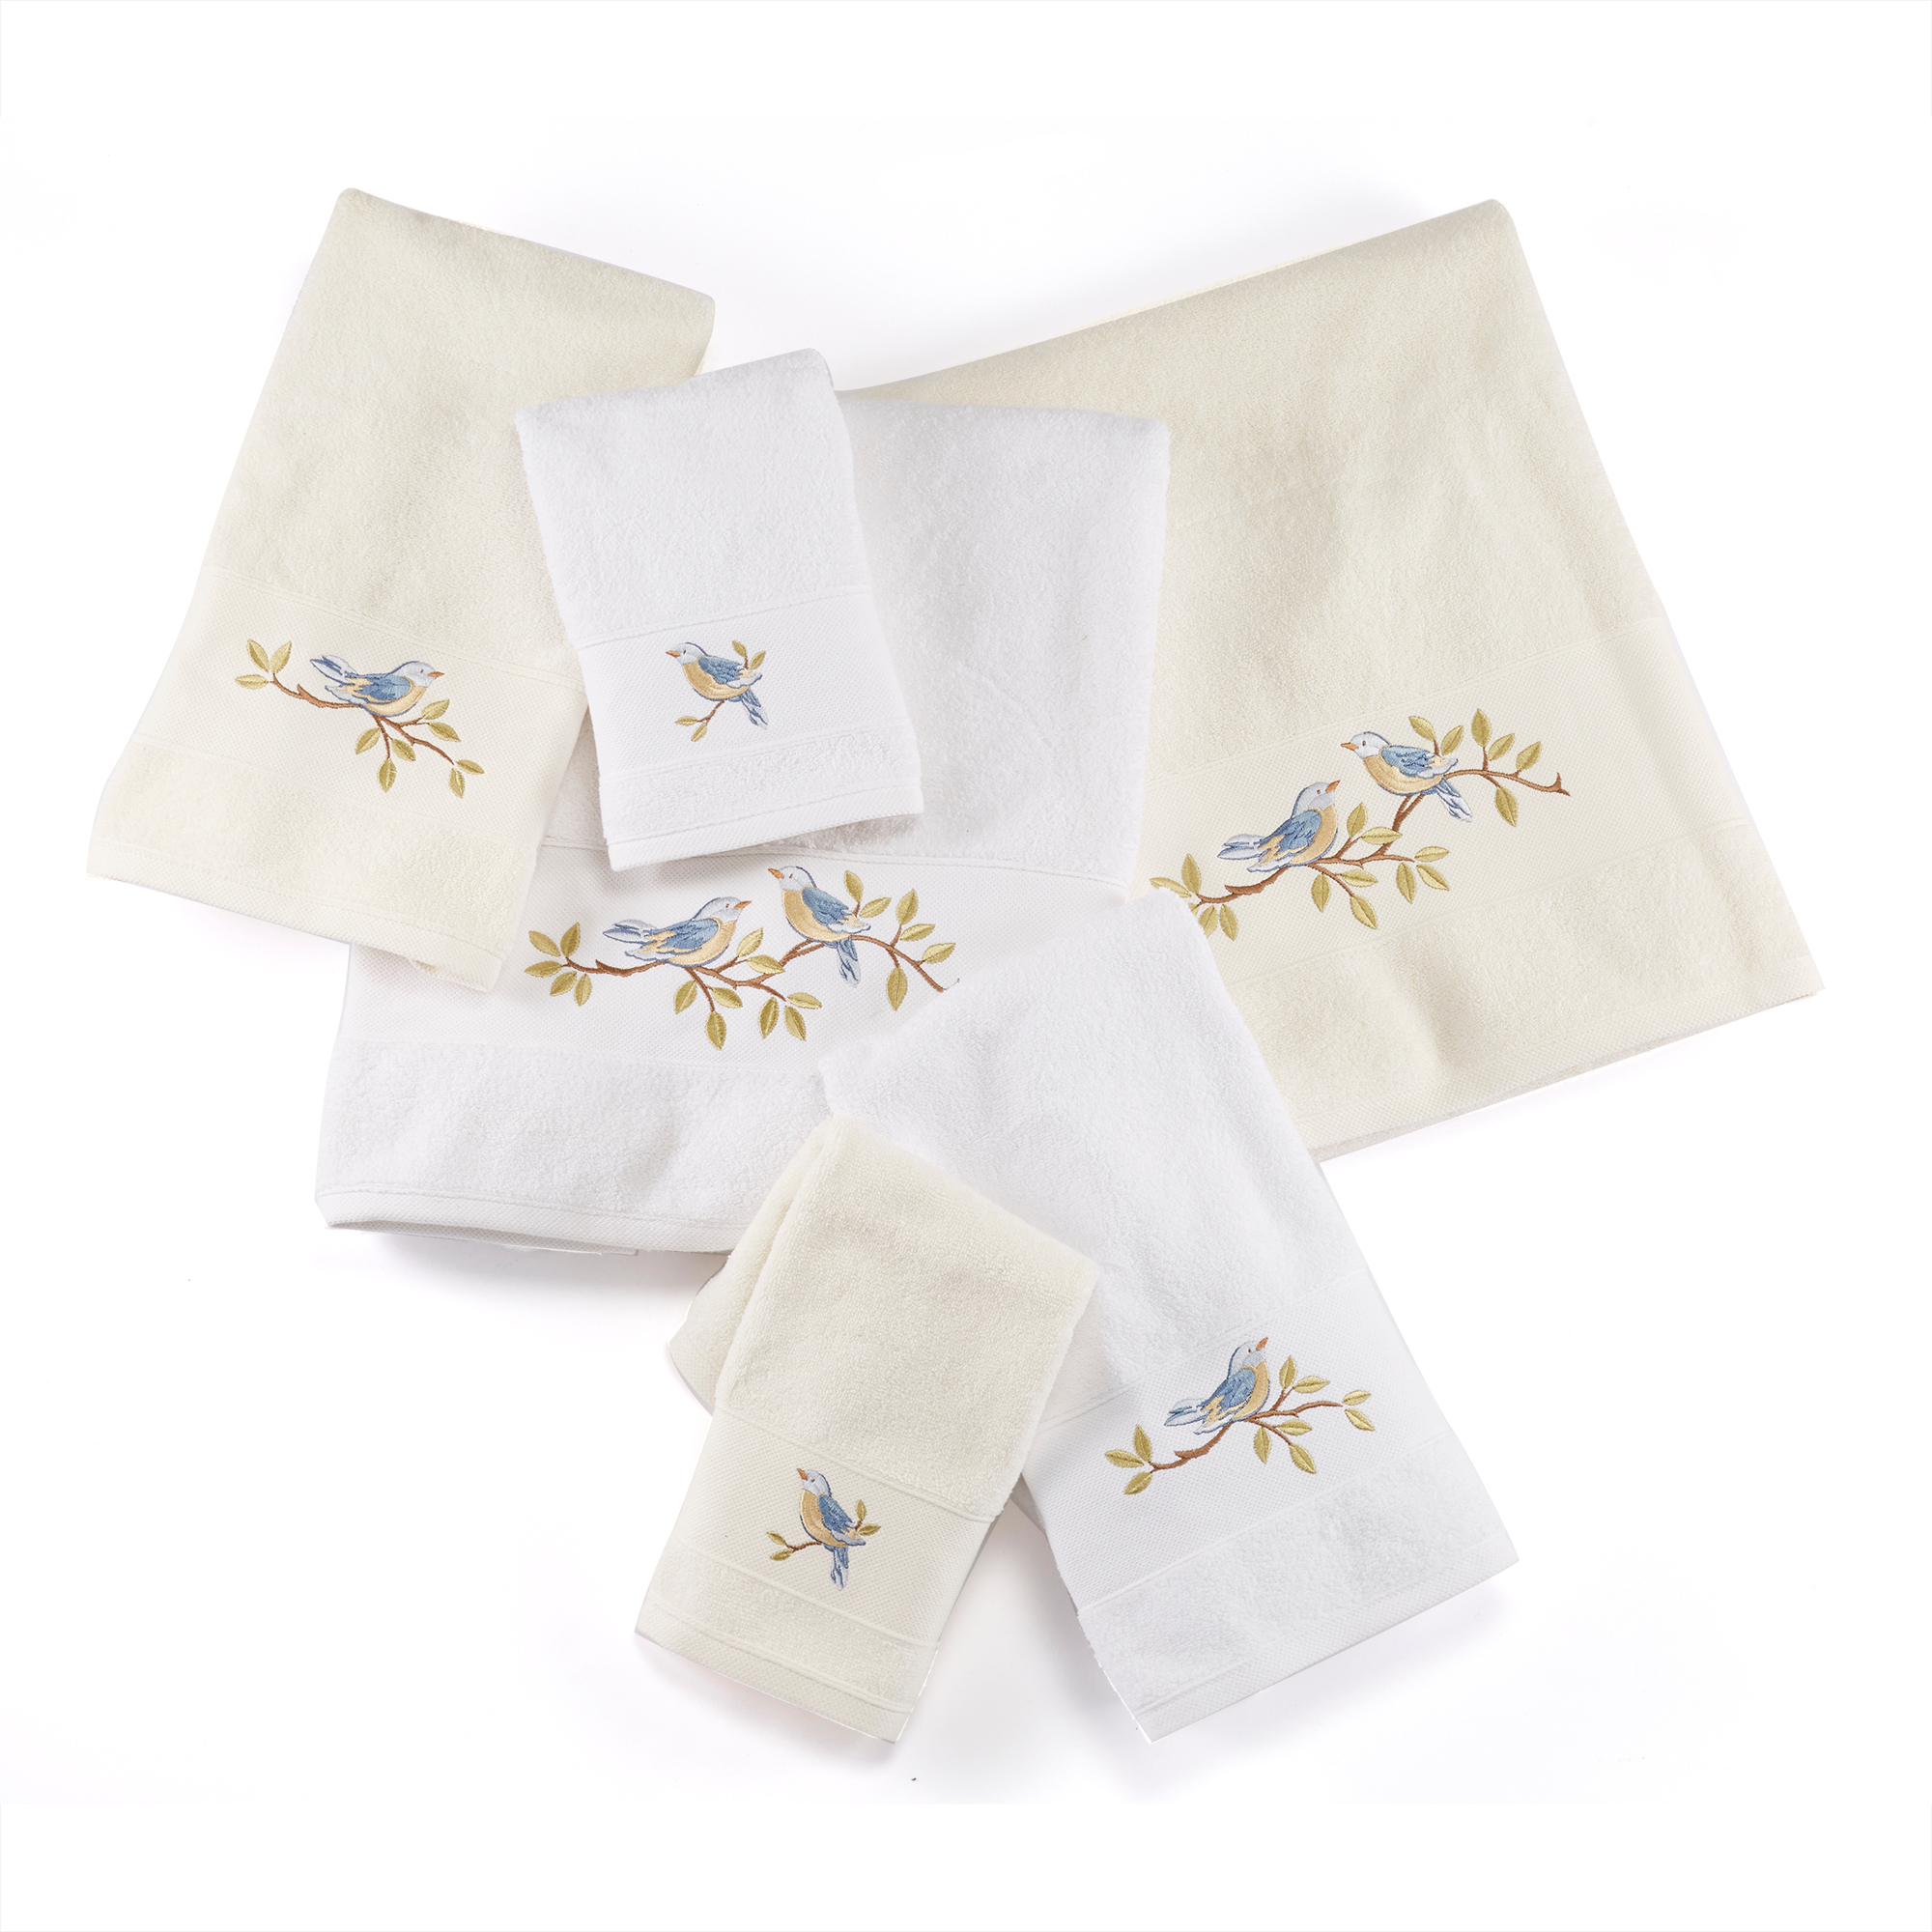 Chelsea Garden Towels, Birds